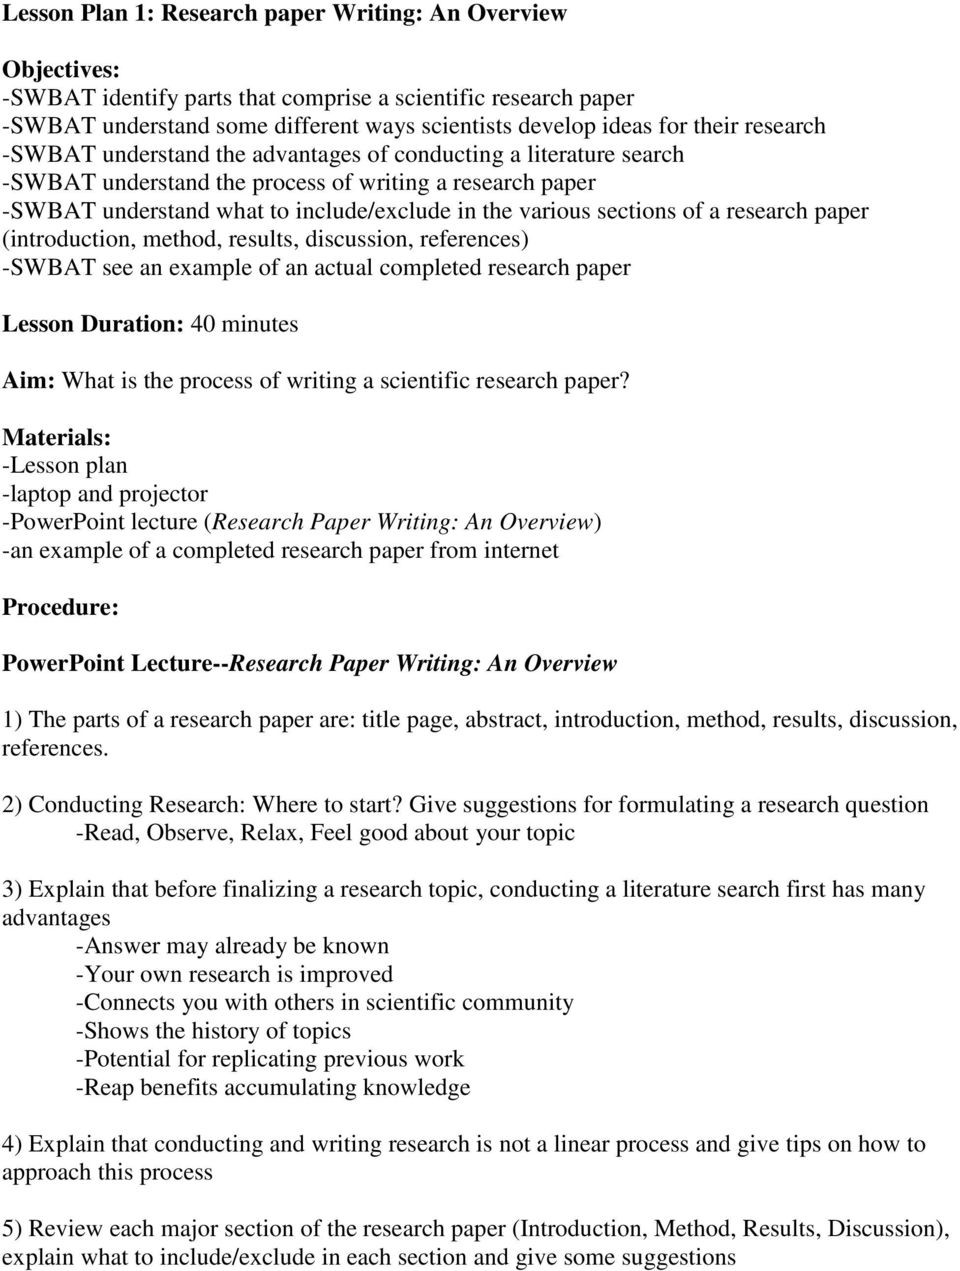 005 Research Paper Page 1 Parts Of Wonderful A Introduction 960